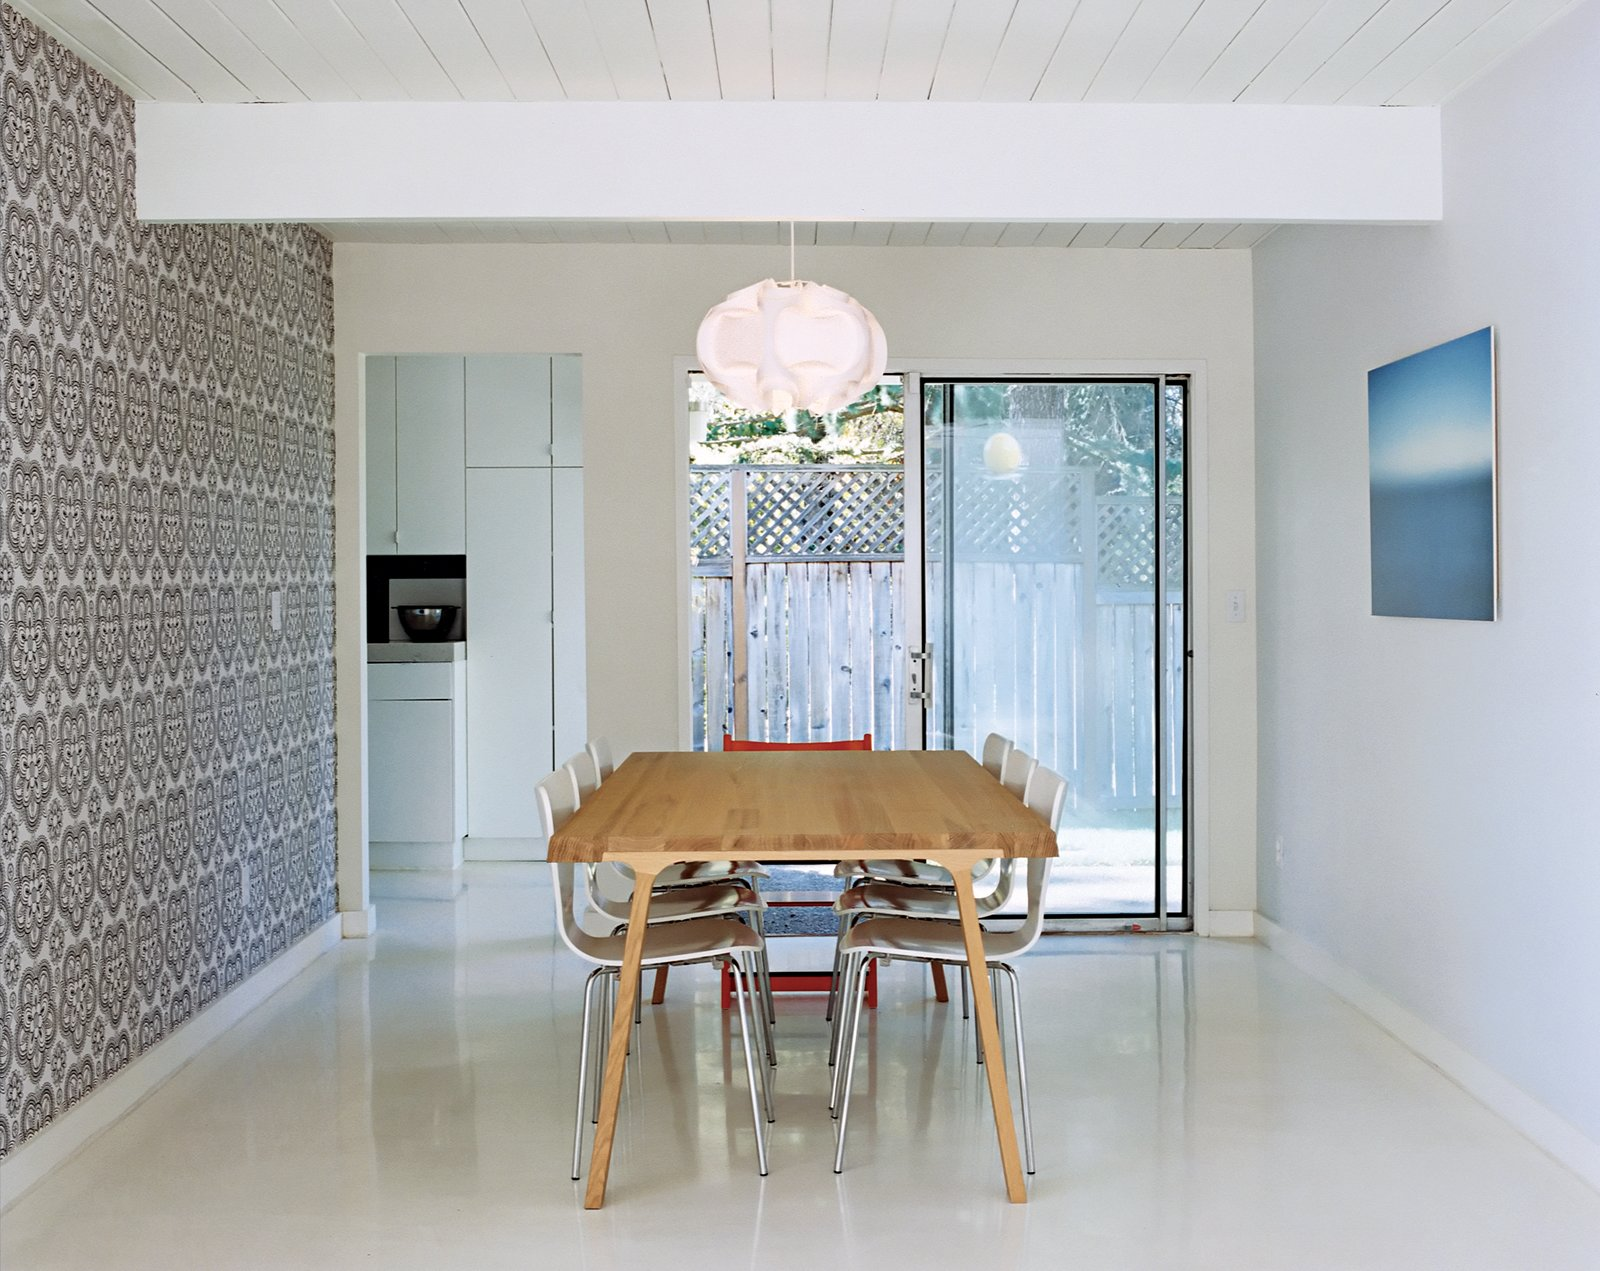 On those rare sunny days the Segerholts might even forsake their Doble dining table by Montis for their green backyard. Tagged: Dining Room, Pendant Lighting, Table, and Chair.  Midcentury Homes by Dwell from A Mid-Century Modern Home in Southwest Portland